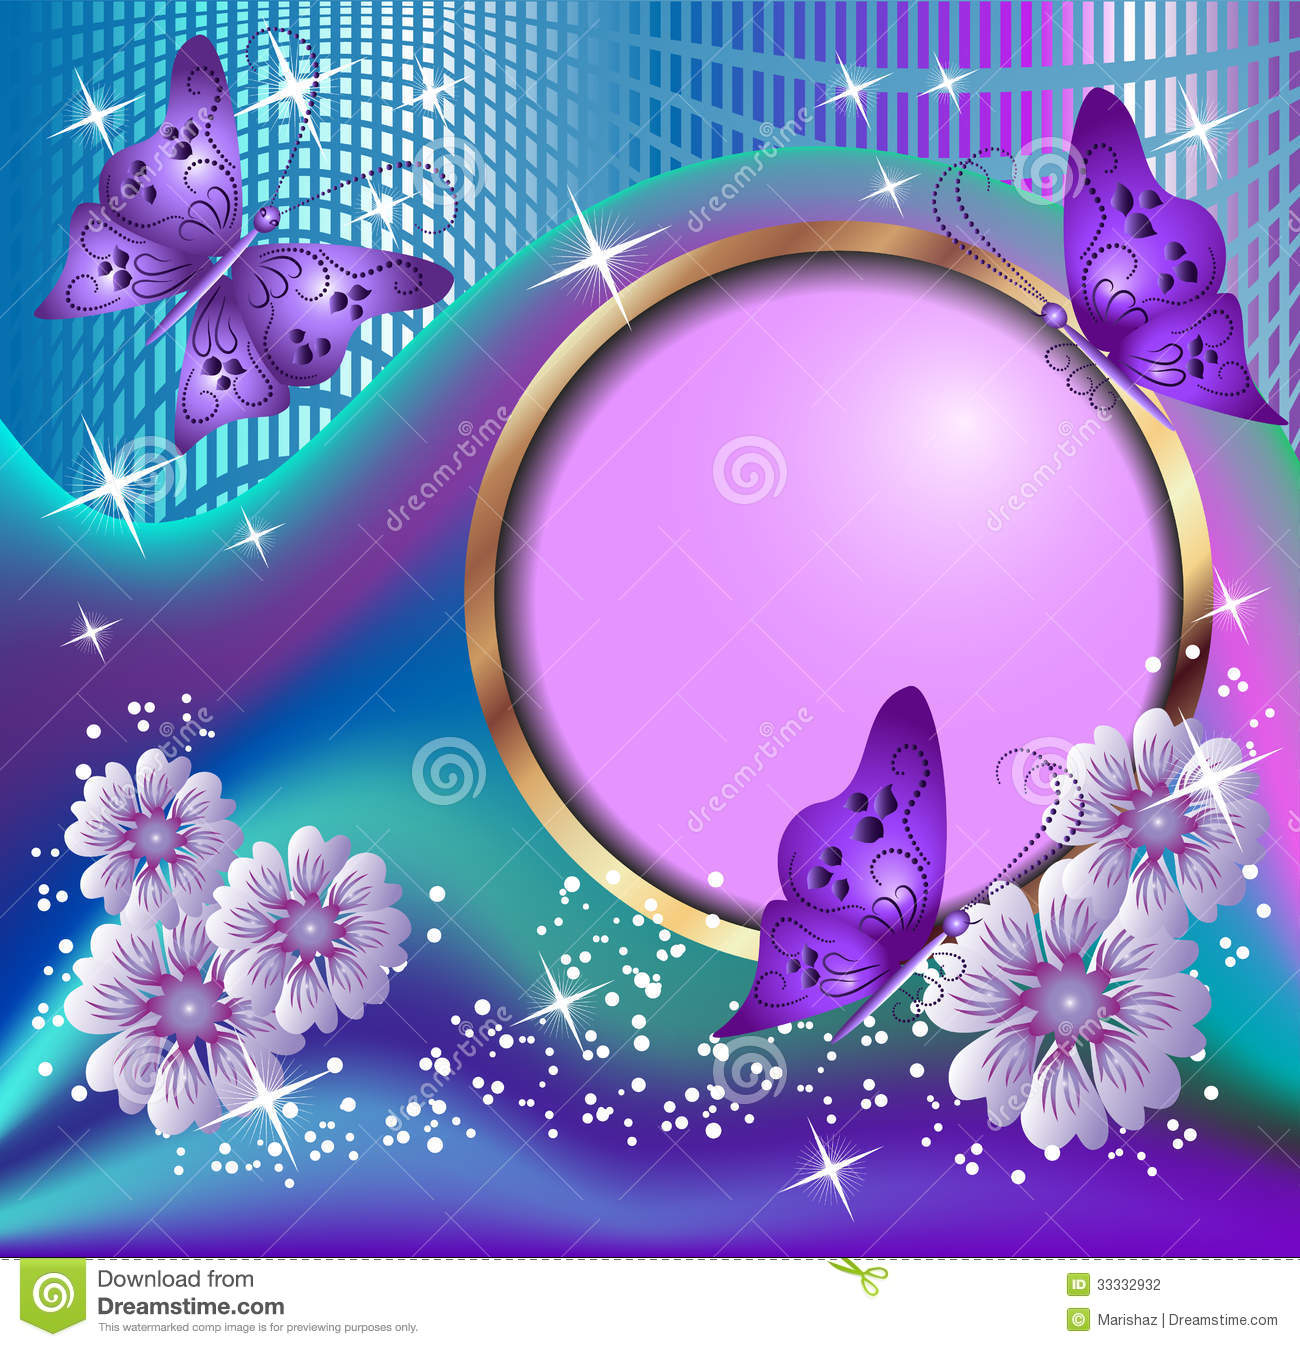 Round Frame, Flowers And Butterflies Stock Photography - Image: 33332932